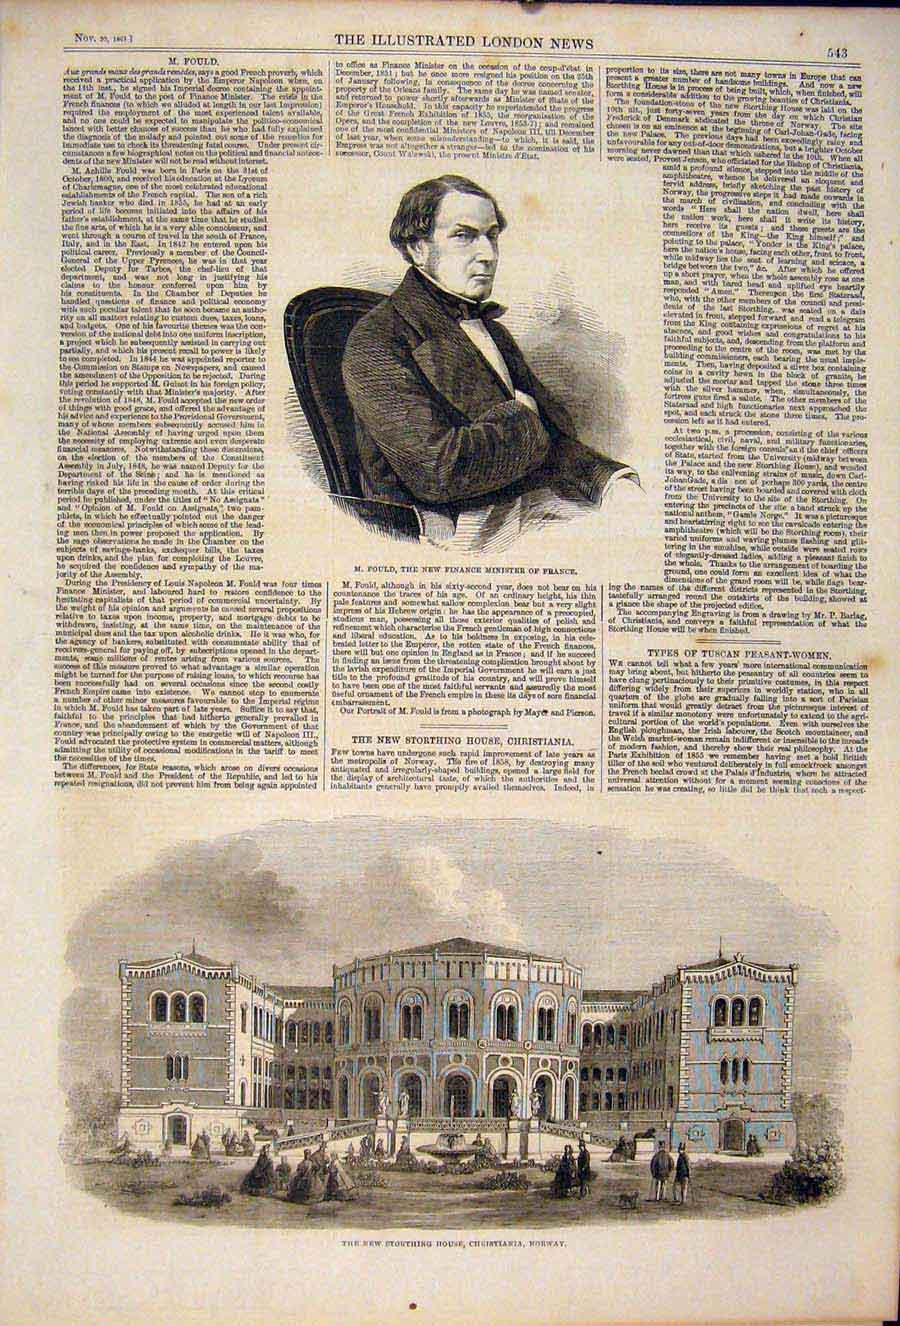 Print Portrait Fould France Storthing House Norway 1861 43Maa1 Old Original